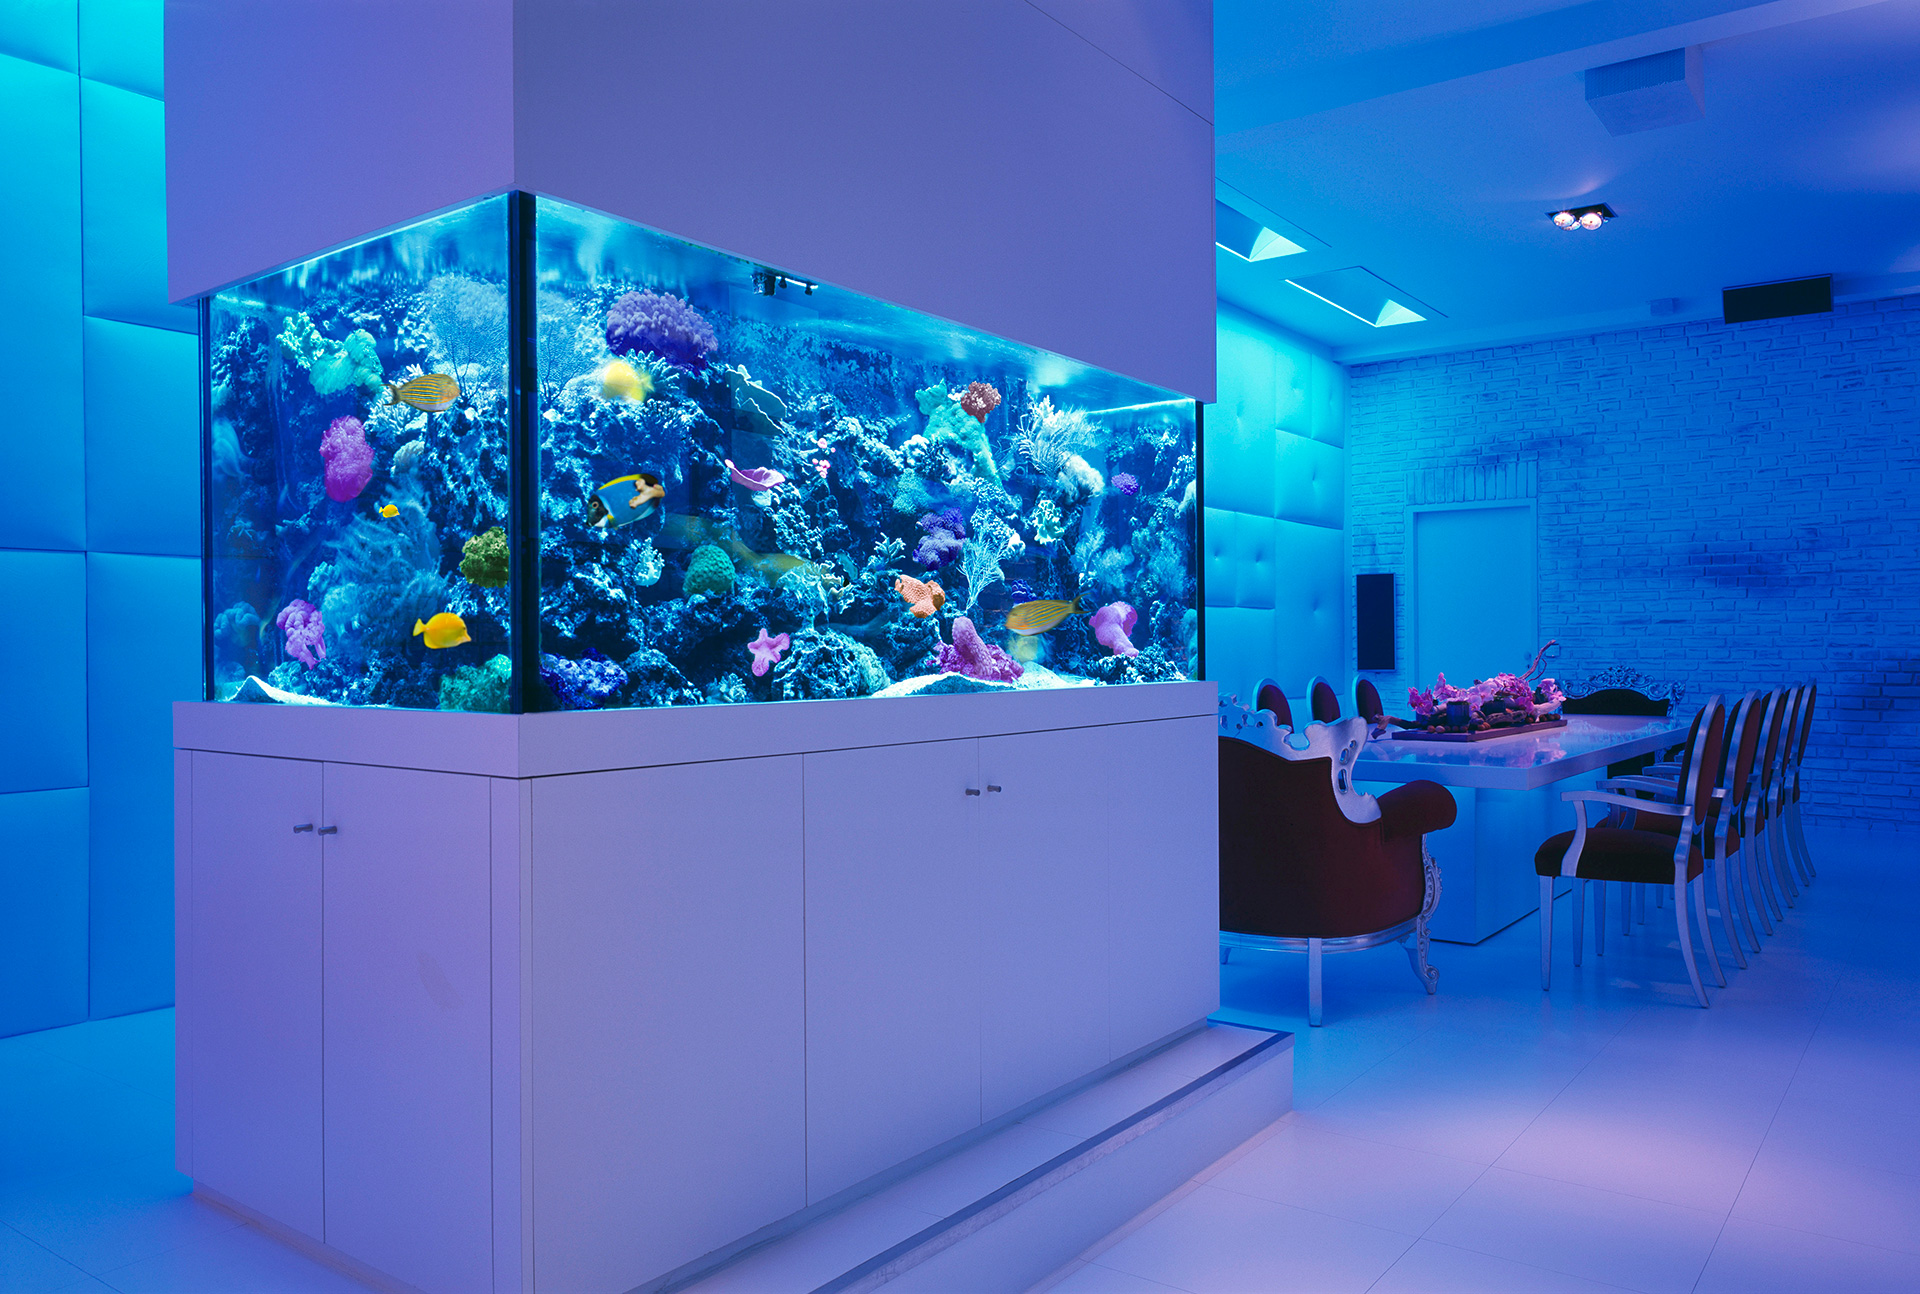 Fish aquarium in brisbane - Fish Aquarium In Room Room 3 Decorating Ideas With Aquarium